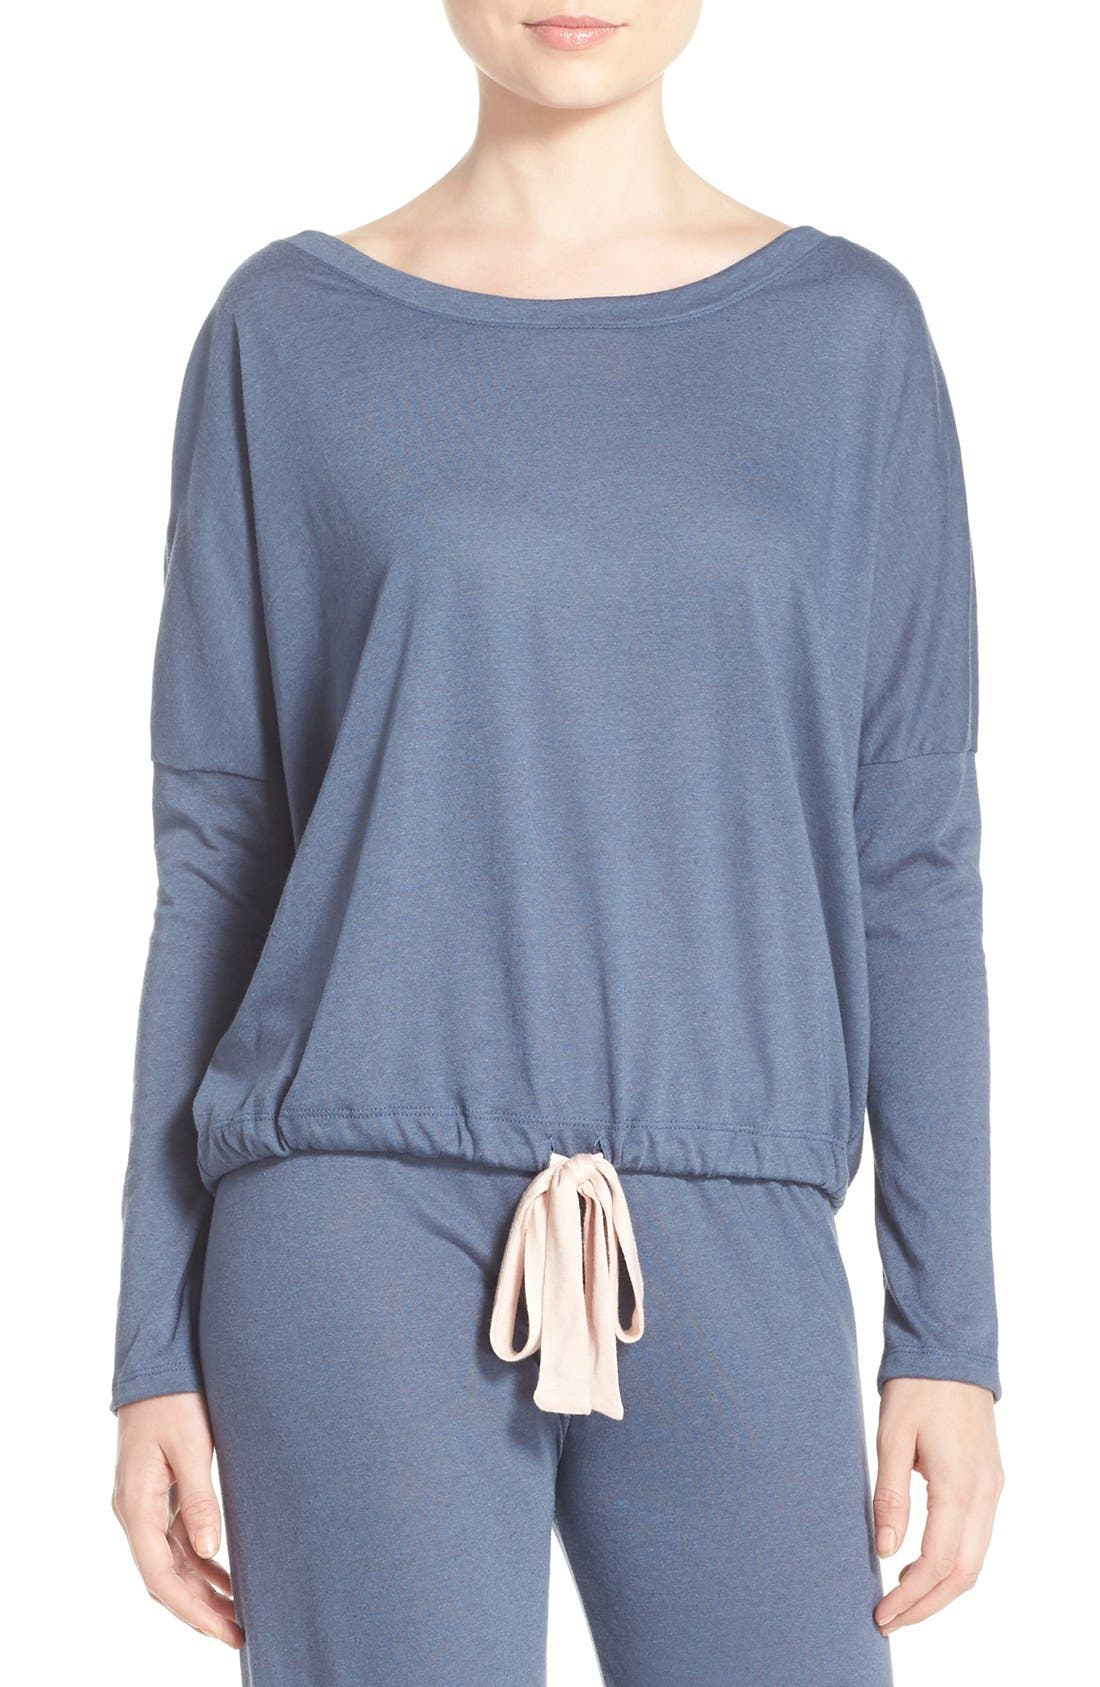 Alternate Image 1 Selected - Eberjey Heather Knit Slouchy Tee